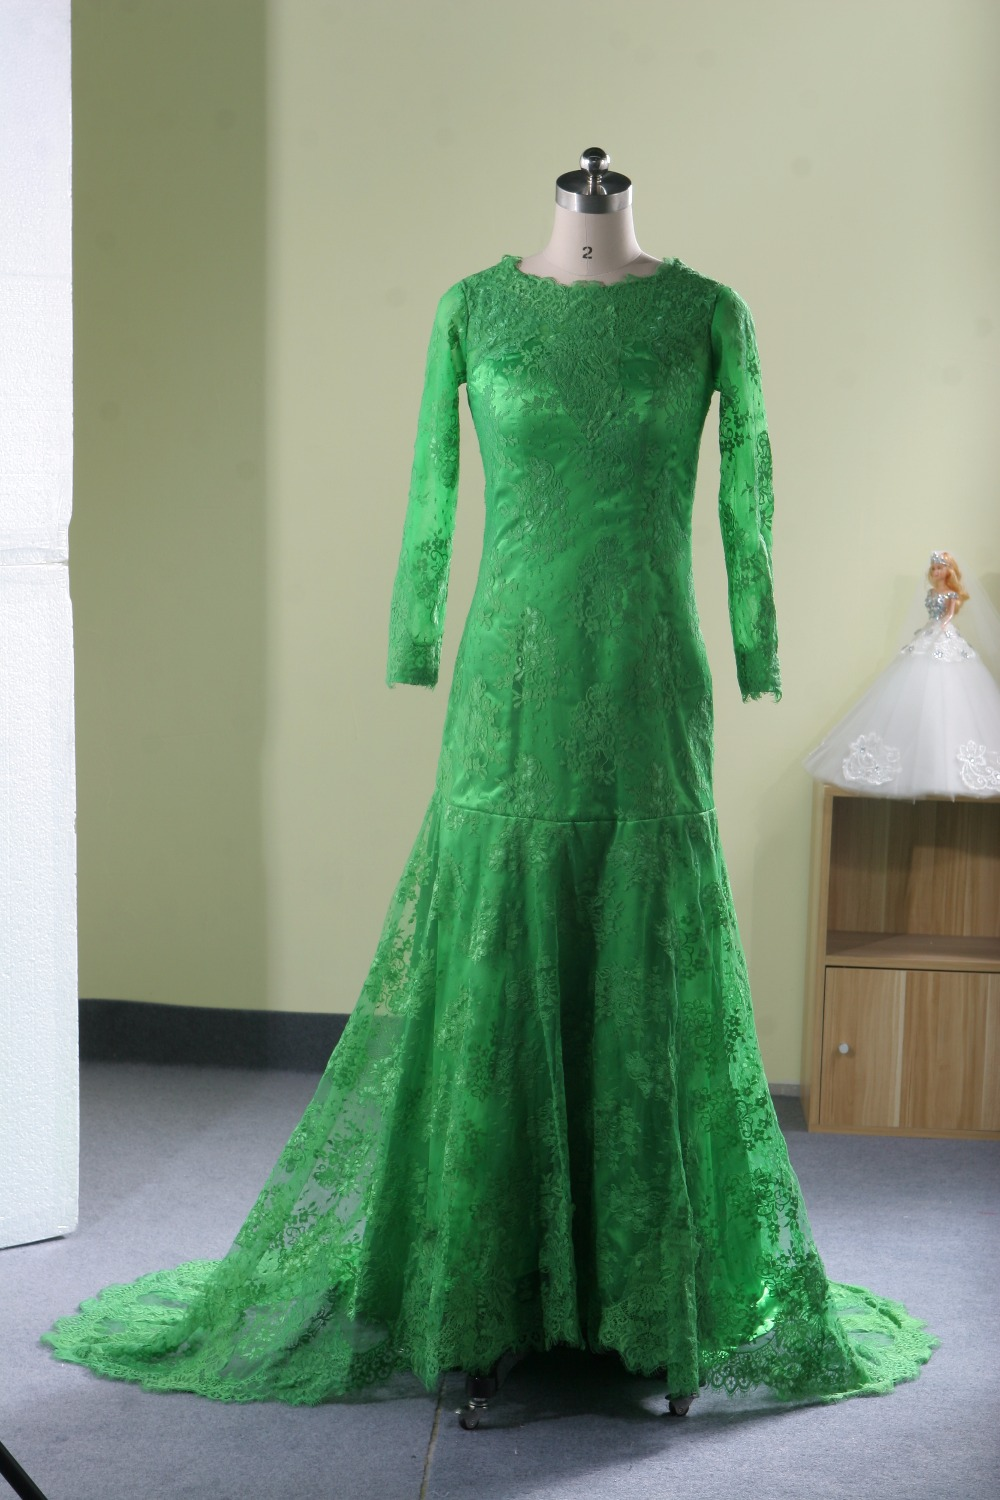 c968c53460b Long Sleeve Muslim Emerald Green Evening Dress Lace Turkish Pregnant  Maternity Evening Prom Dresses Gowns Abaya Designs Dubai